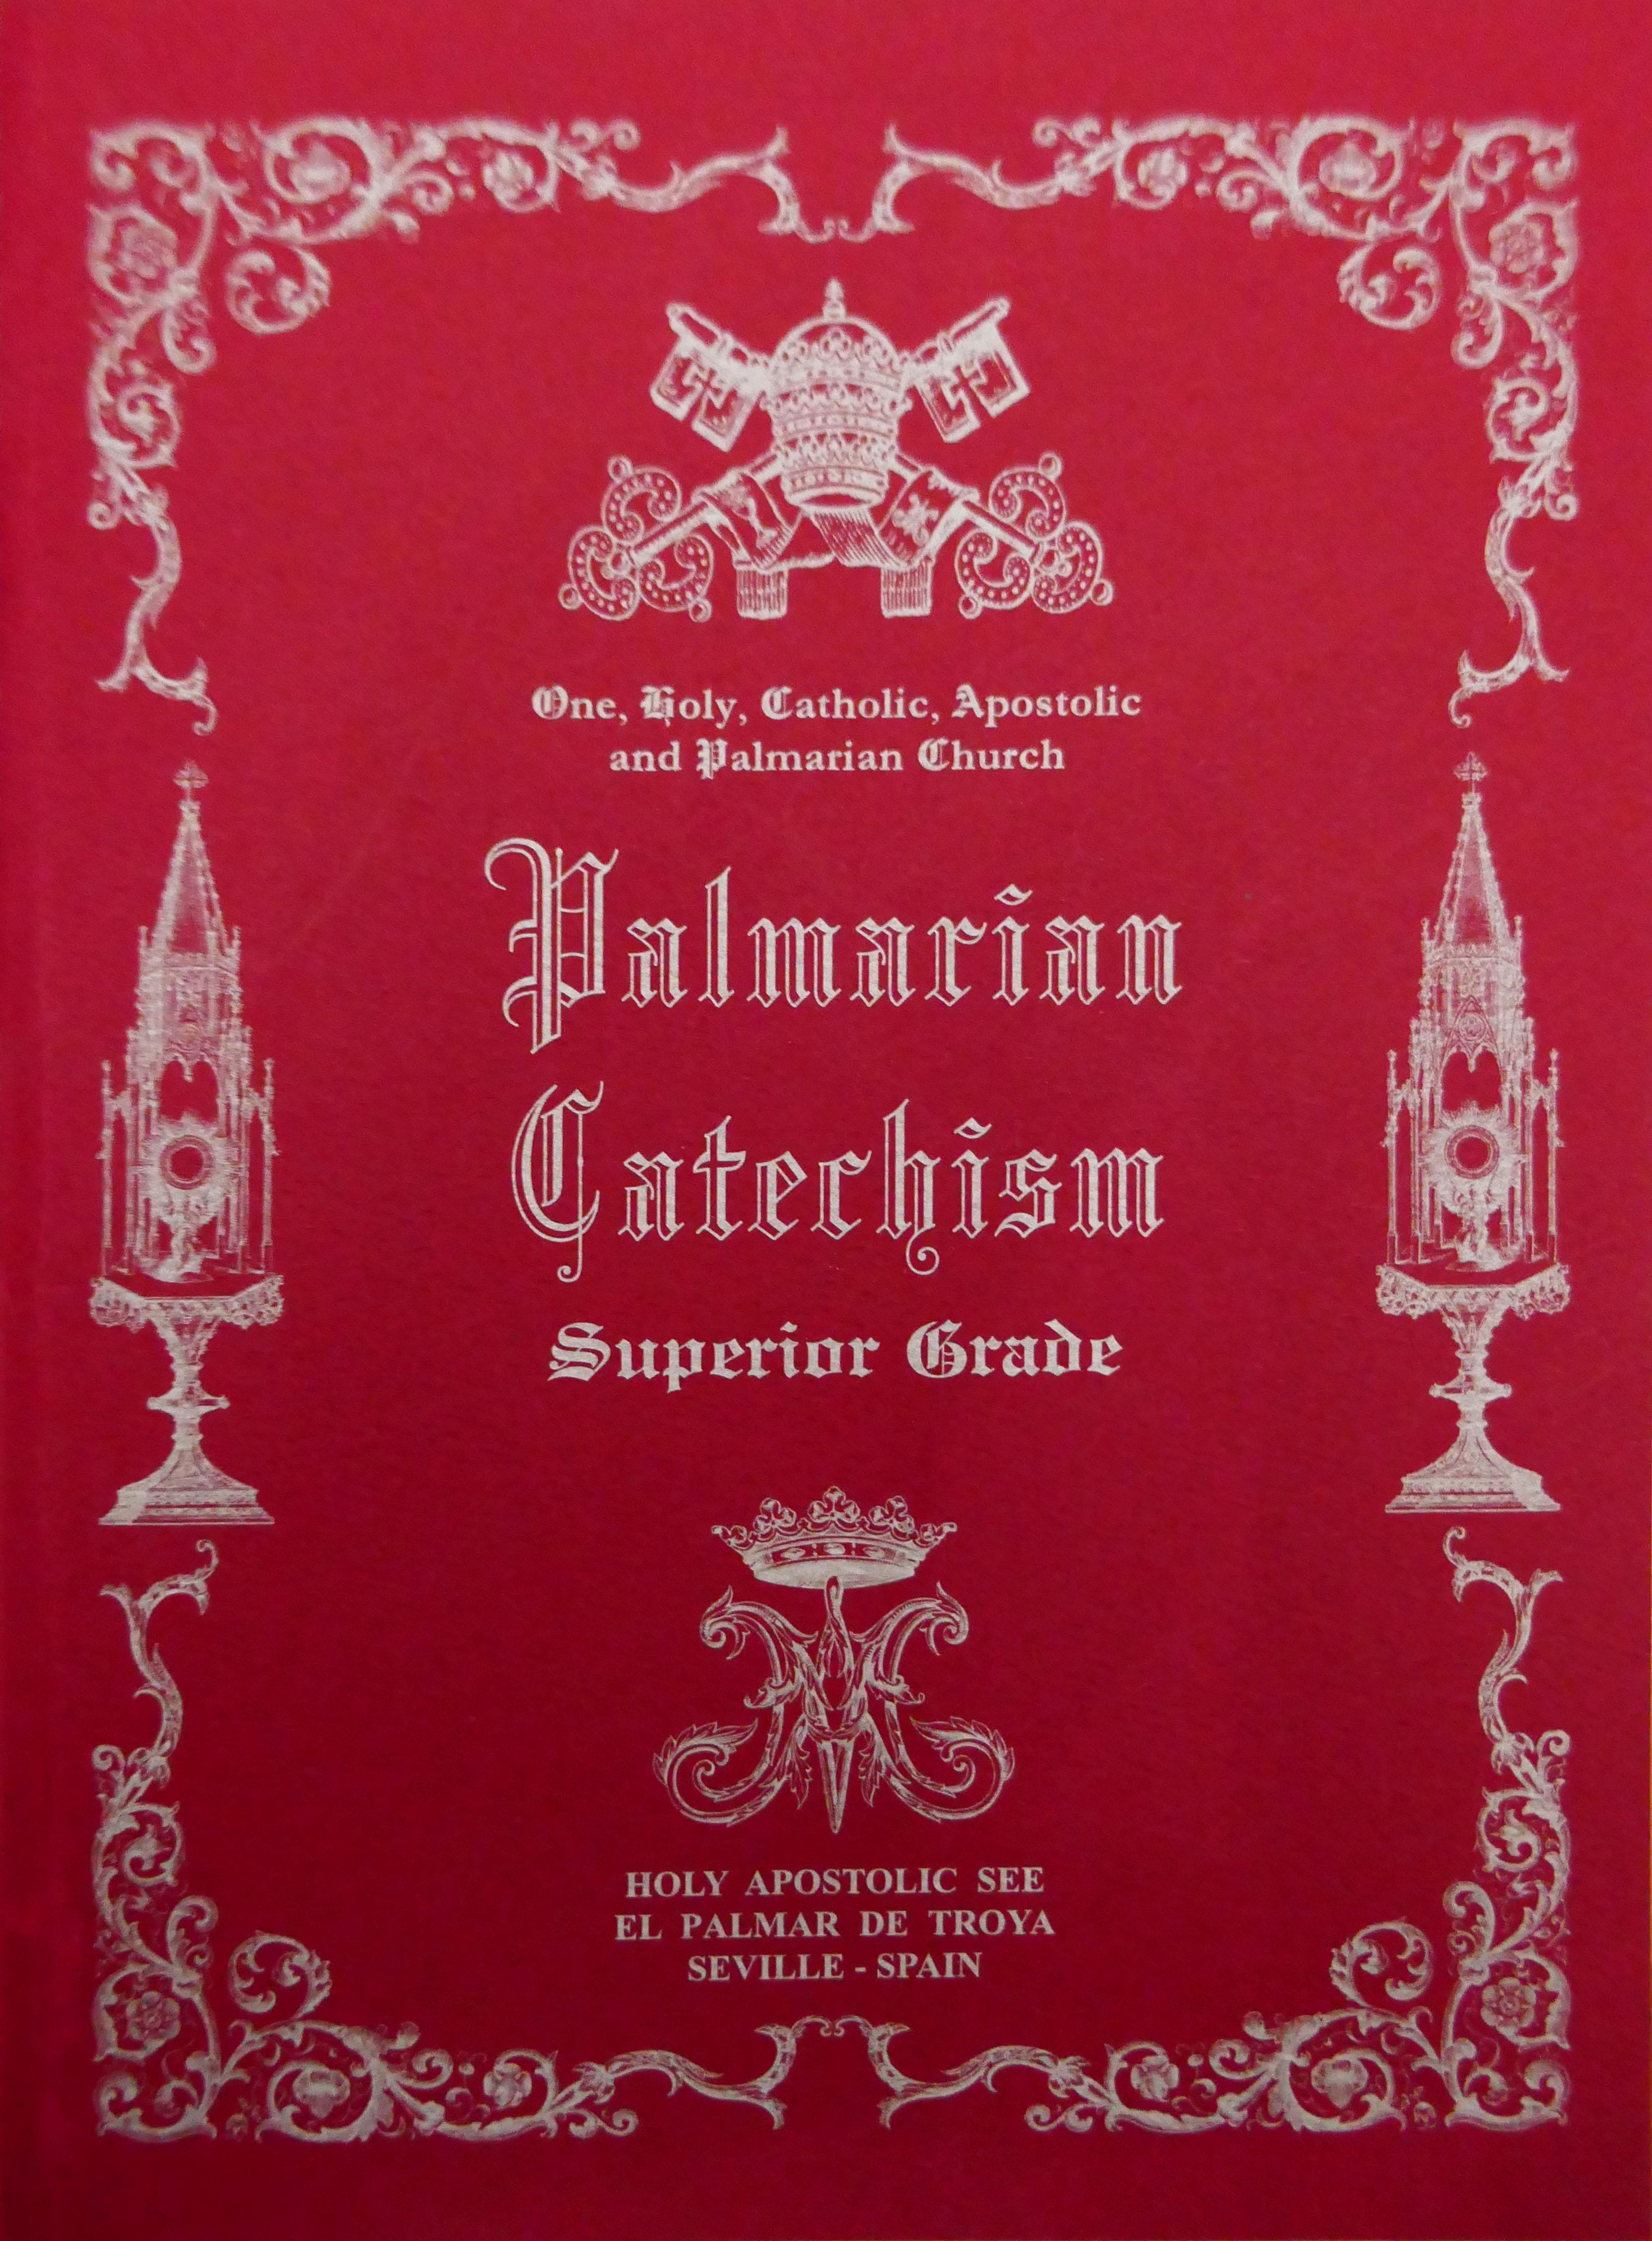 """<a href=""""https://www.palmarianchurch.org/wp-content/uploads/2019/03/Extracts-from-the-Palmarian-Catechism.pdf"""" title=""""Extracts from the Palmarian Catechism"""">Extracts from the Palmarian Catechism  <br> <br>Zobacz więcej</a>"""